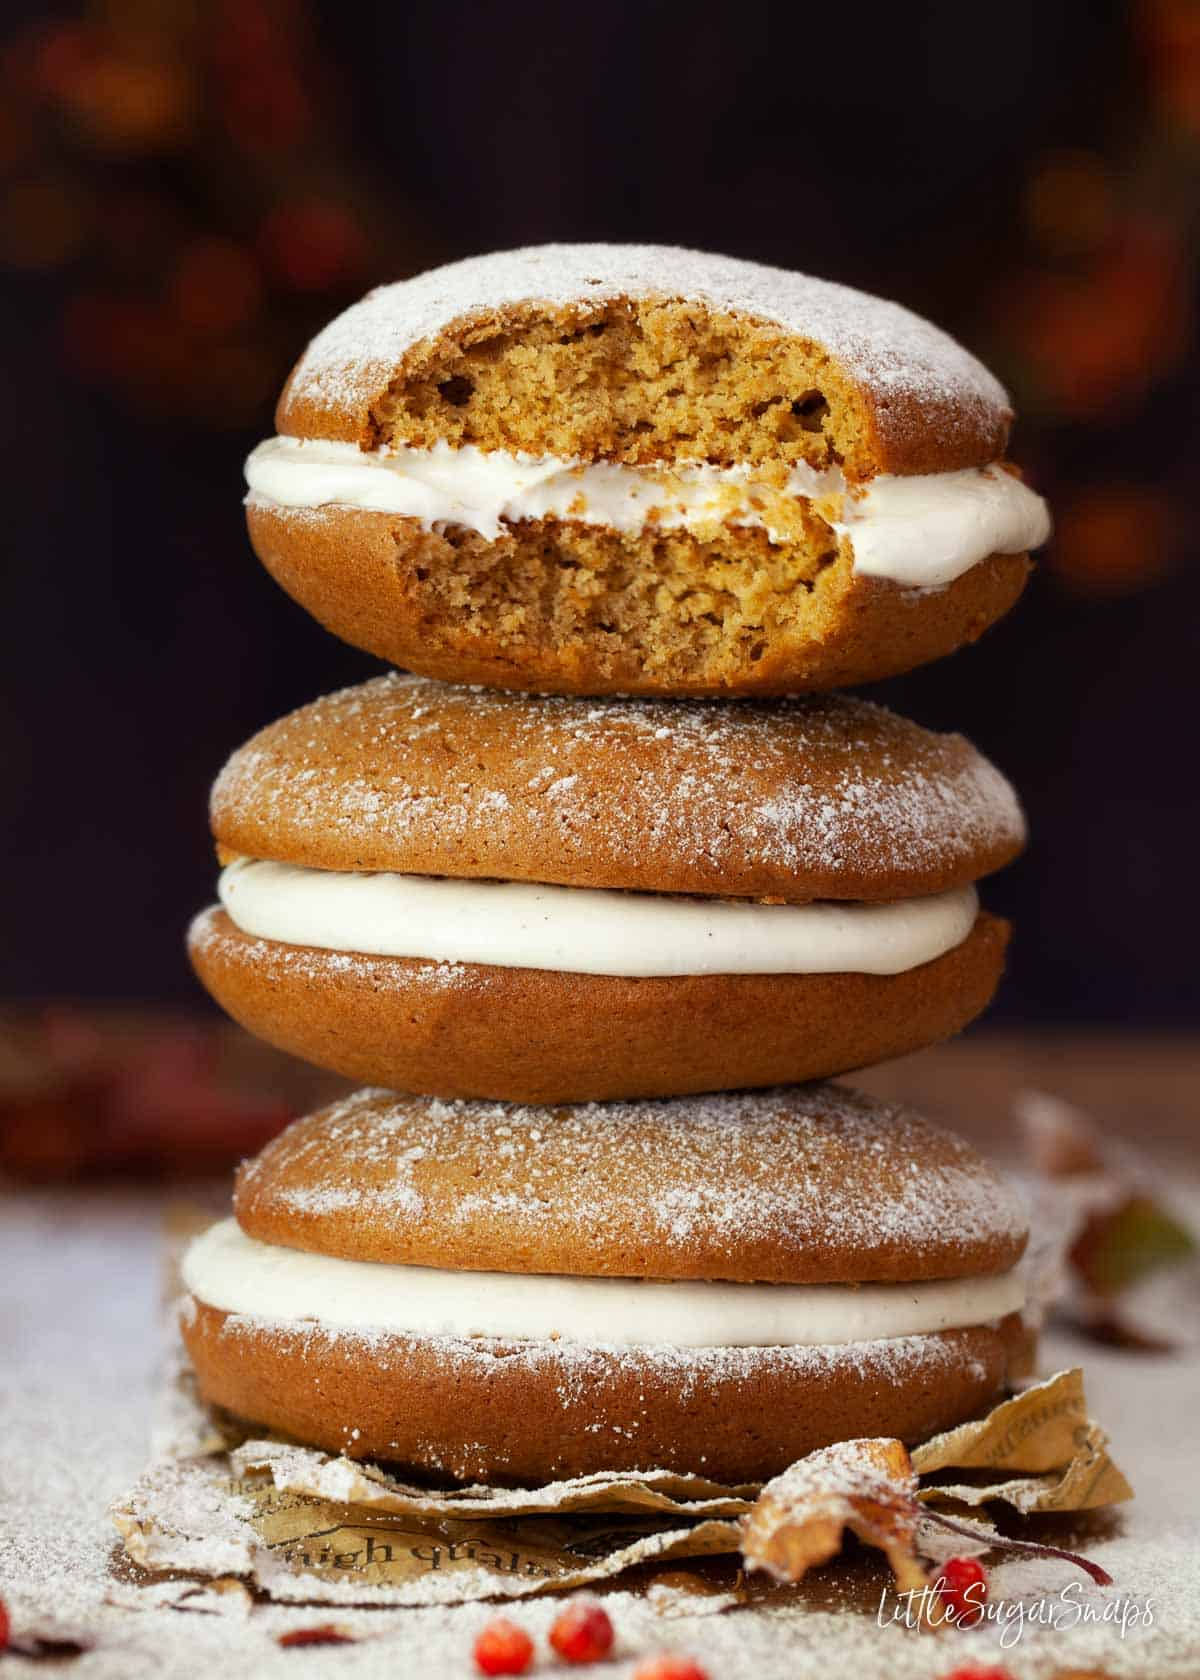 A stack of pumpkin whoopie pies. One has been bitten into.